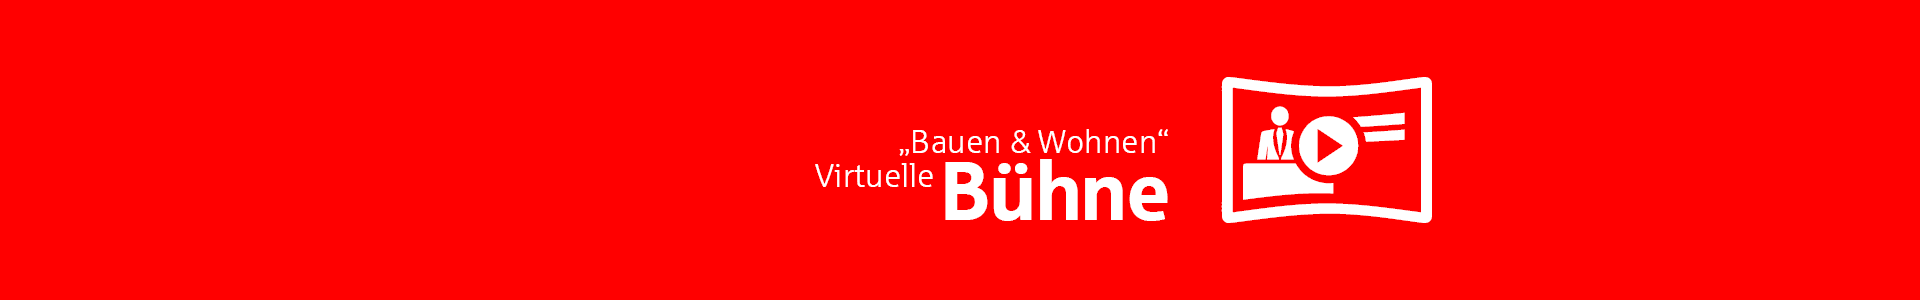 Immobilienmesse Messe-Bühne